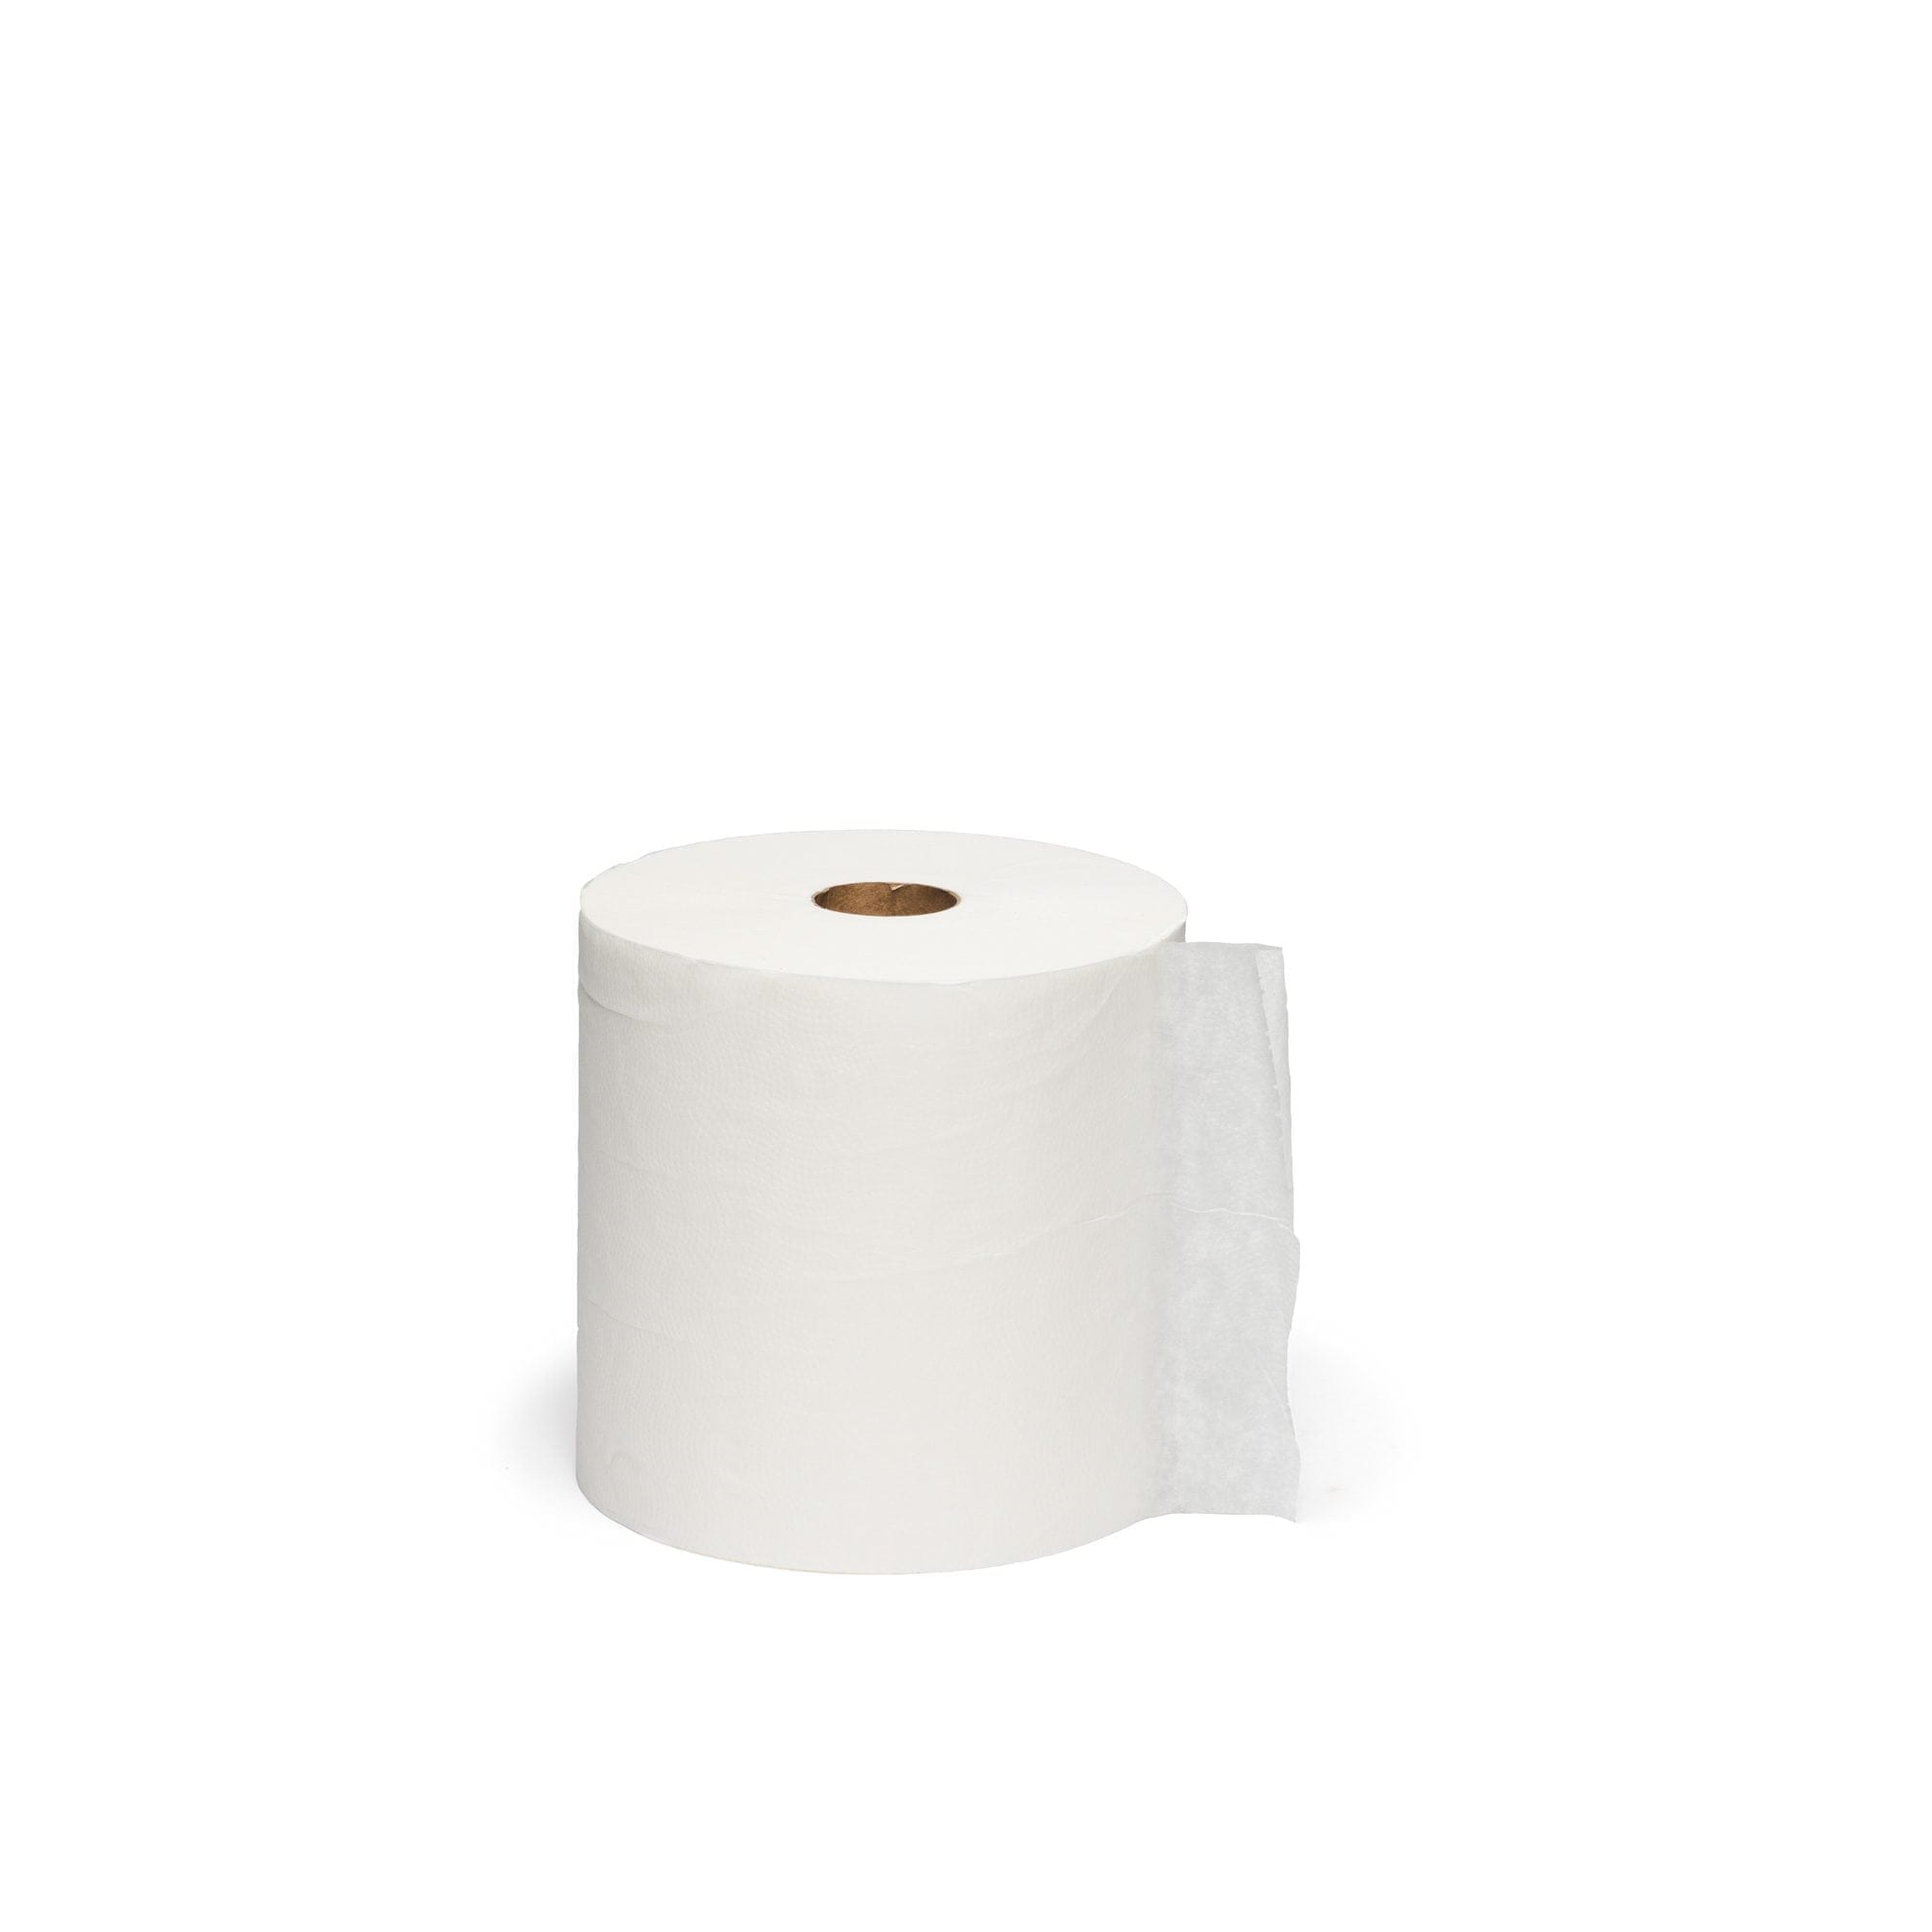 Hardwound Roll Towel 800 Ft. White – 6 Pack - Case